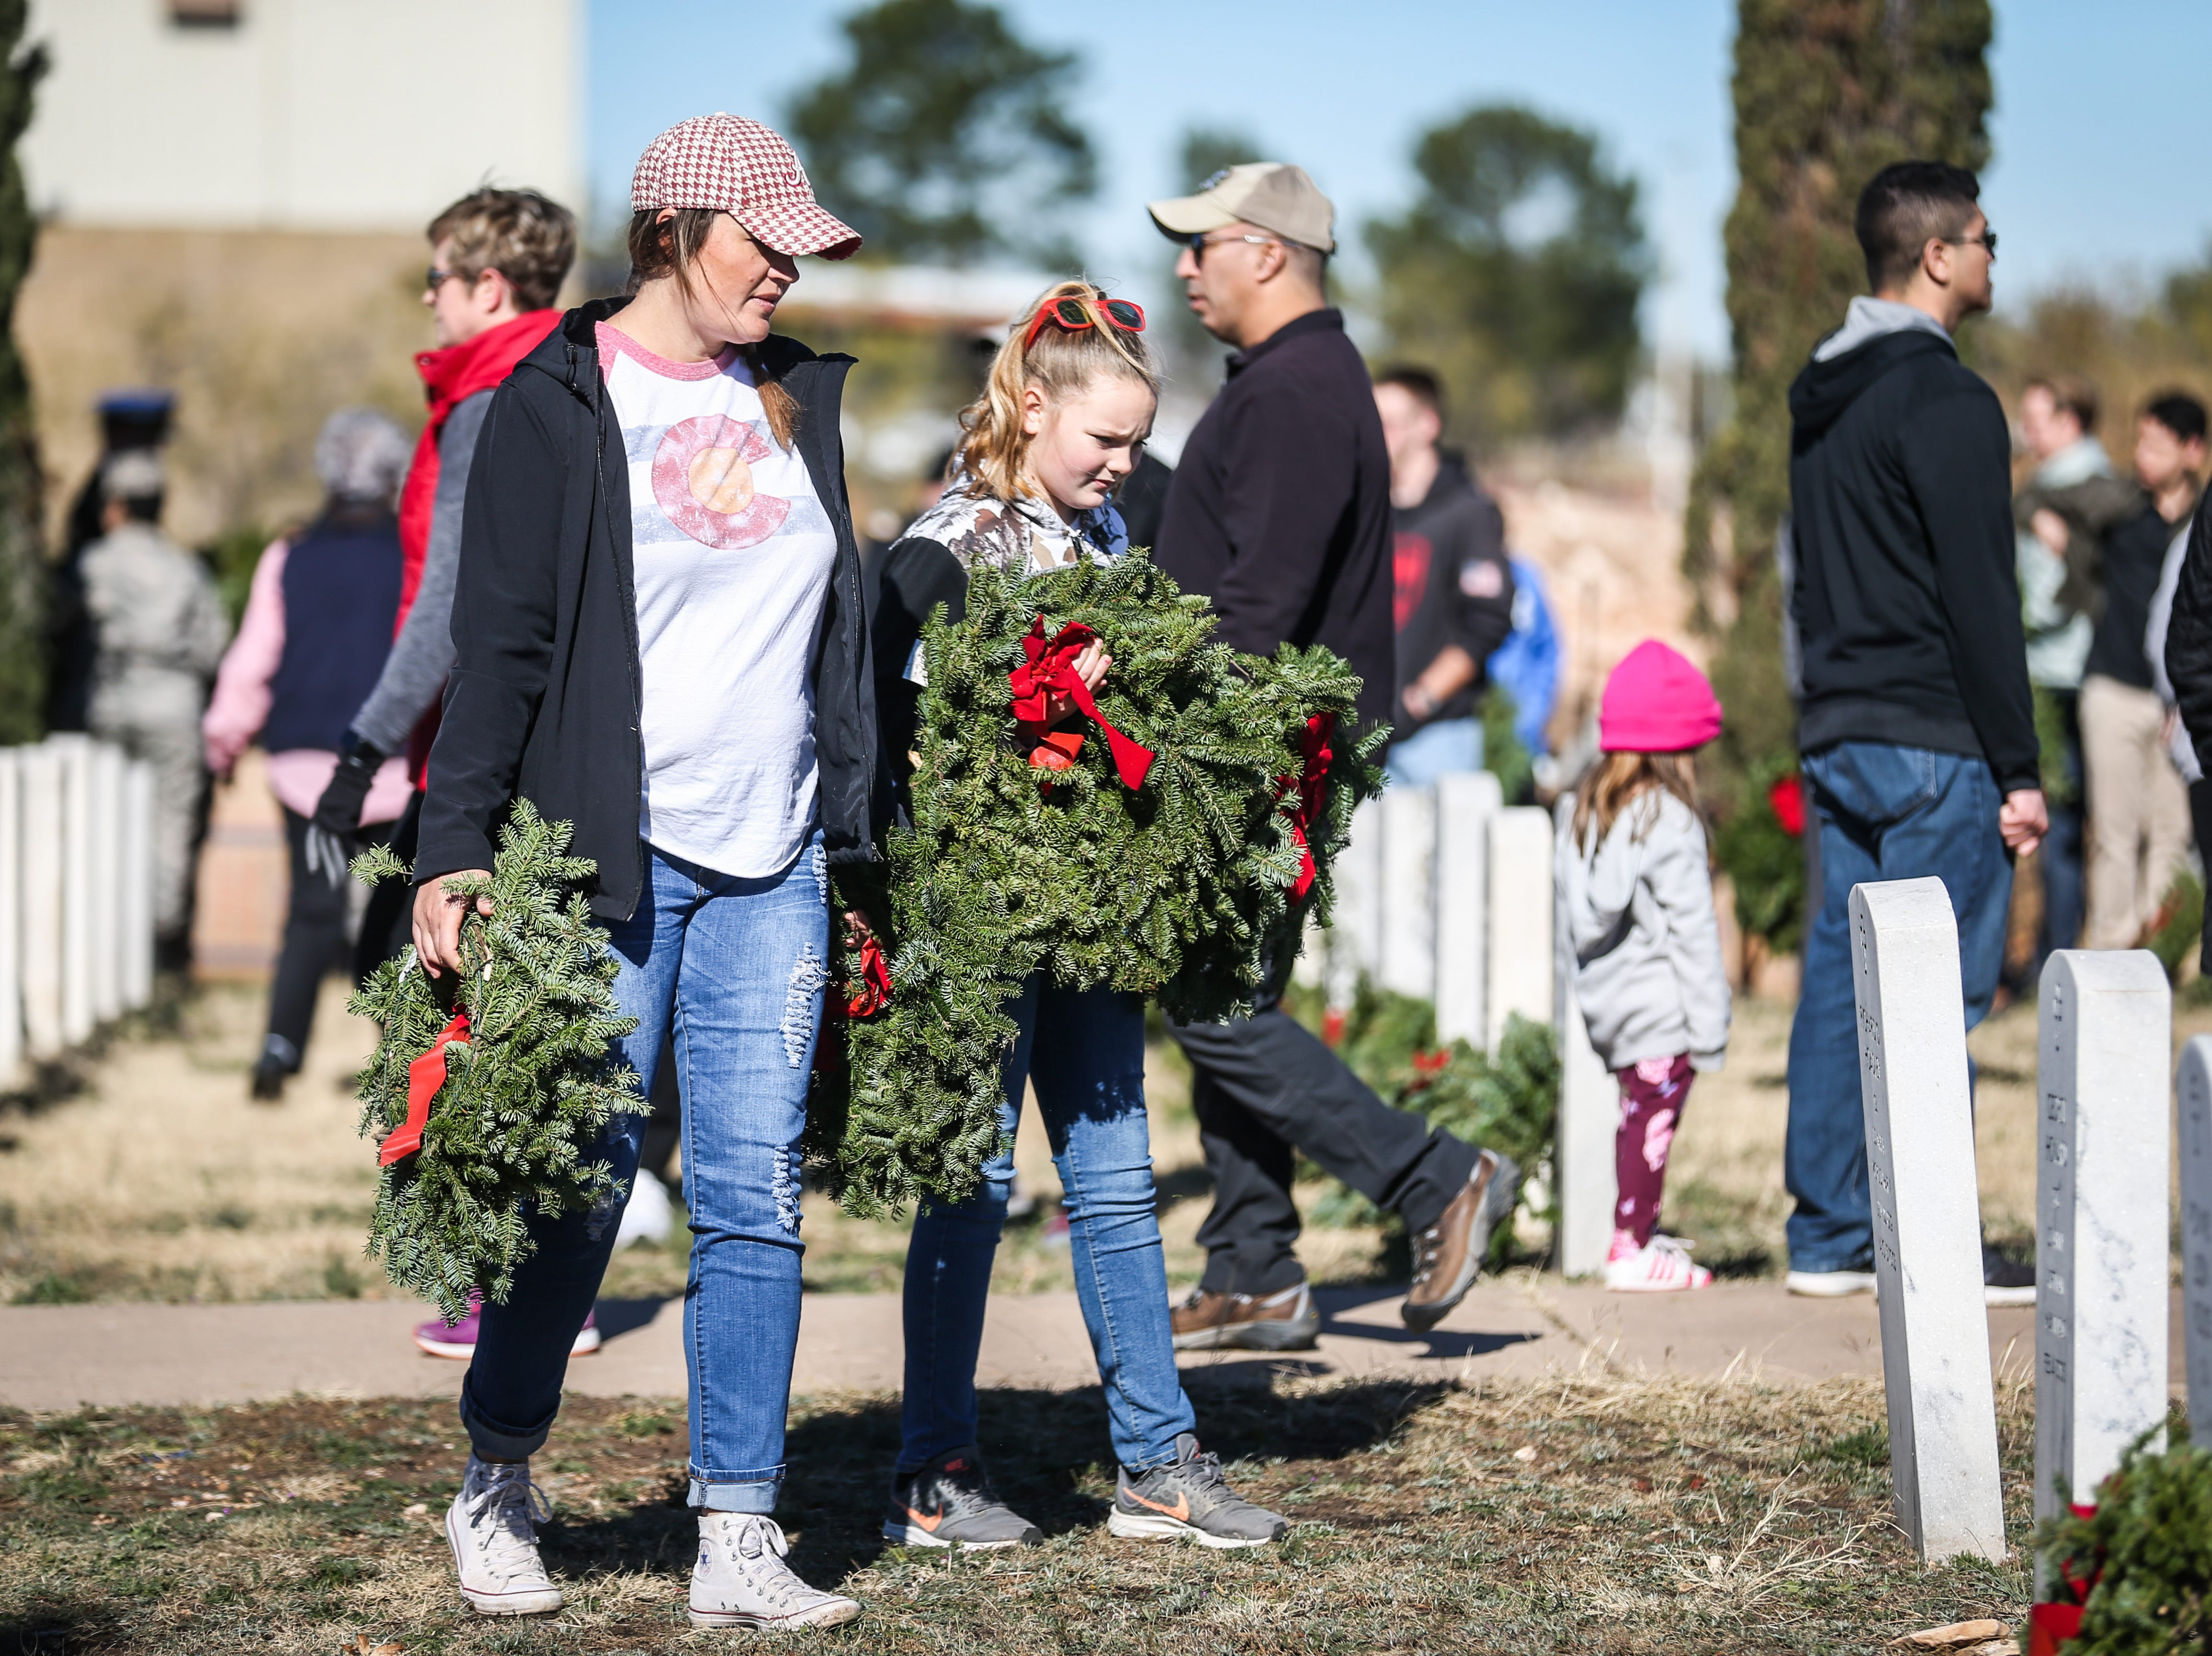 Participants carry wreaths to place on graves during Wreaths Across America Saturday, Dec. 15, 2018, at Belvedere Memorial Park.